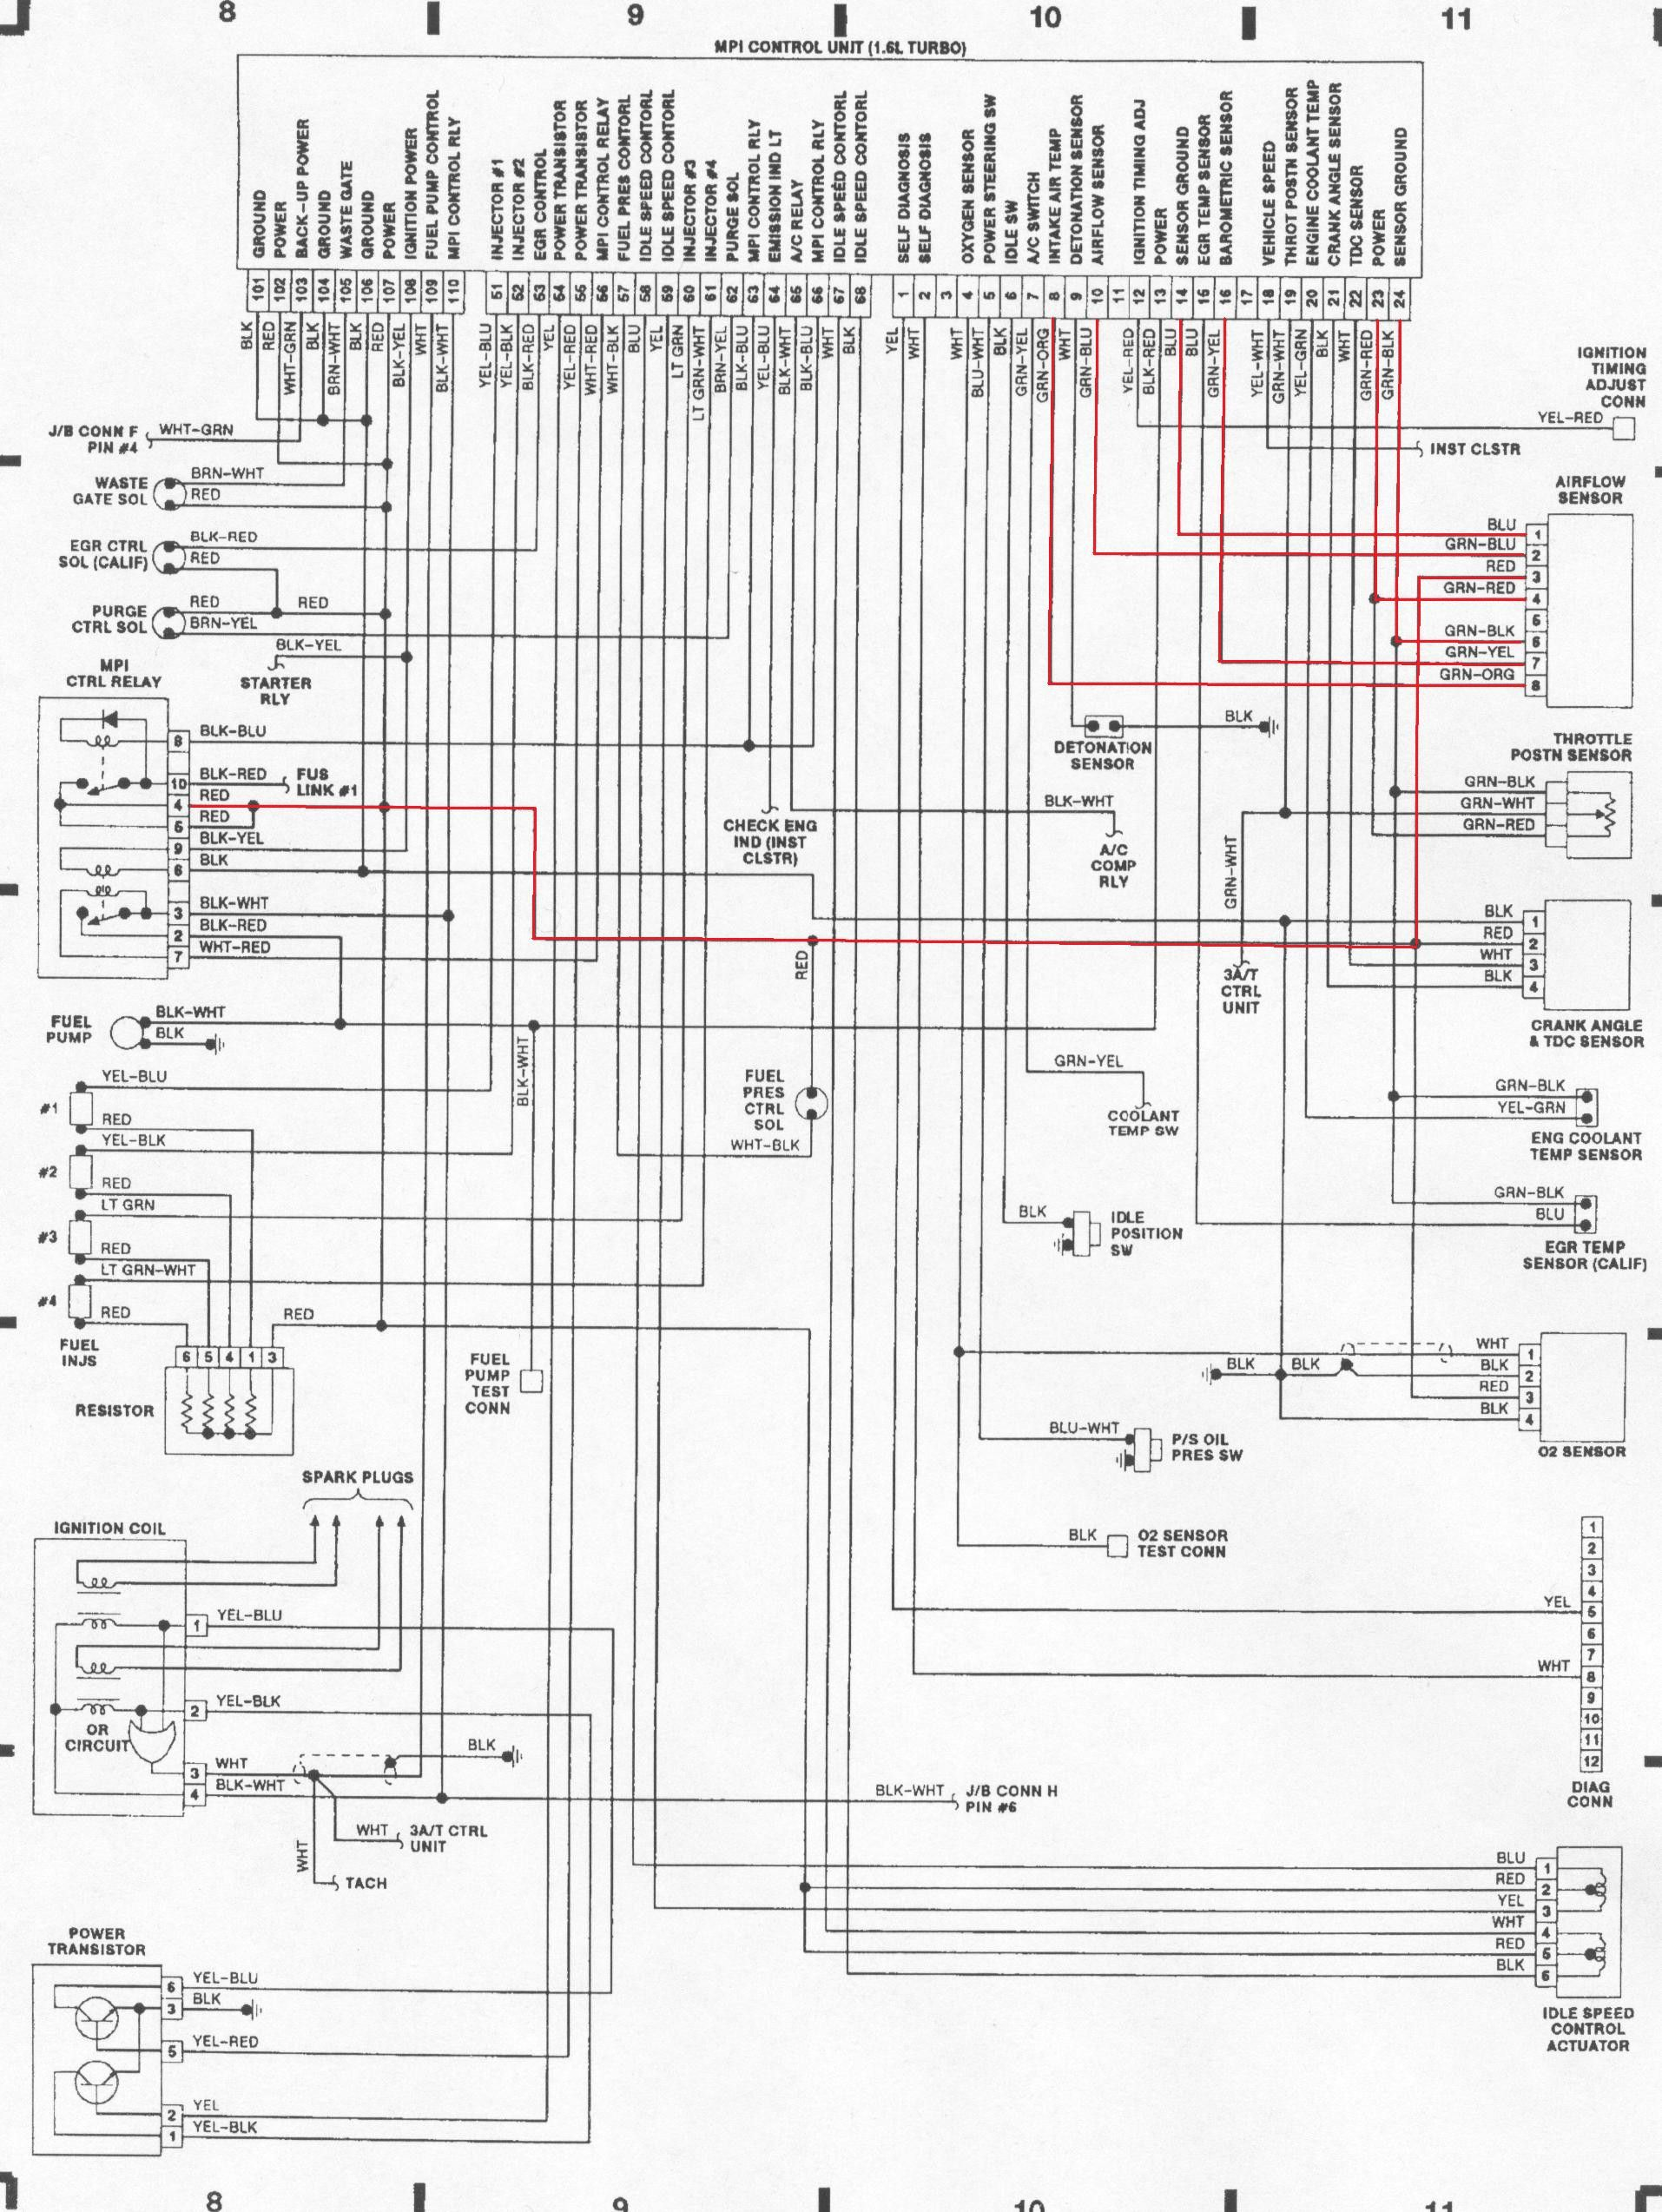 fire truck wiring diagram free picture schematic wiring diagram 4g15 pdf virtual fretboard inside mitsubishi mirage  wiring diagram 4g15 pdf virtual